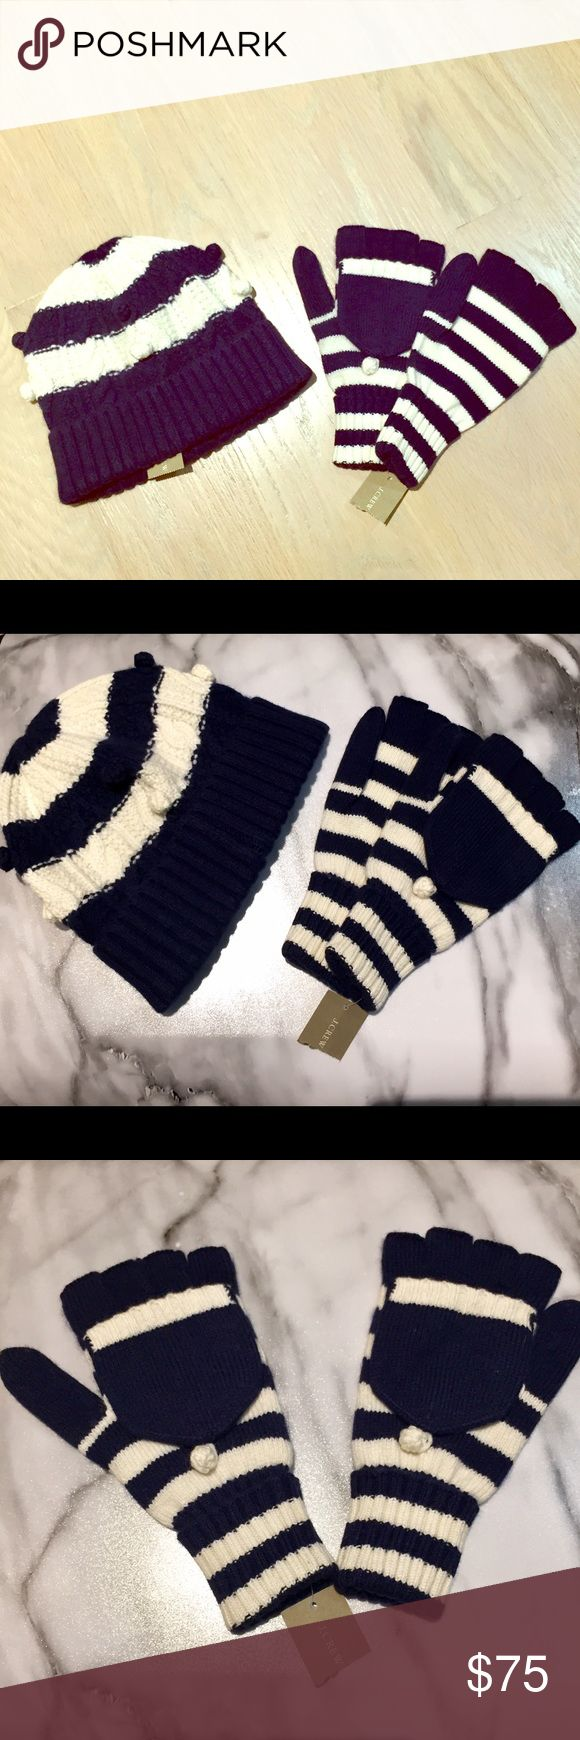 J Crew hat and glove mittens!NWT navy and white J.Crew matching beanie winter hat and glove mittens with flap! Both new with tags and navy blue and white in color! Purchase together or separate! Both are $75 and separate: beanie only is $45 and mittens are $35!! J. Crew Accessories Hats